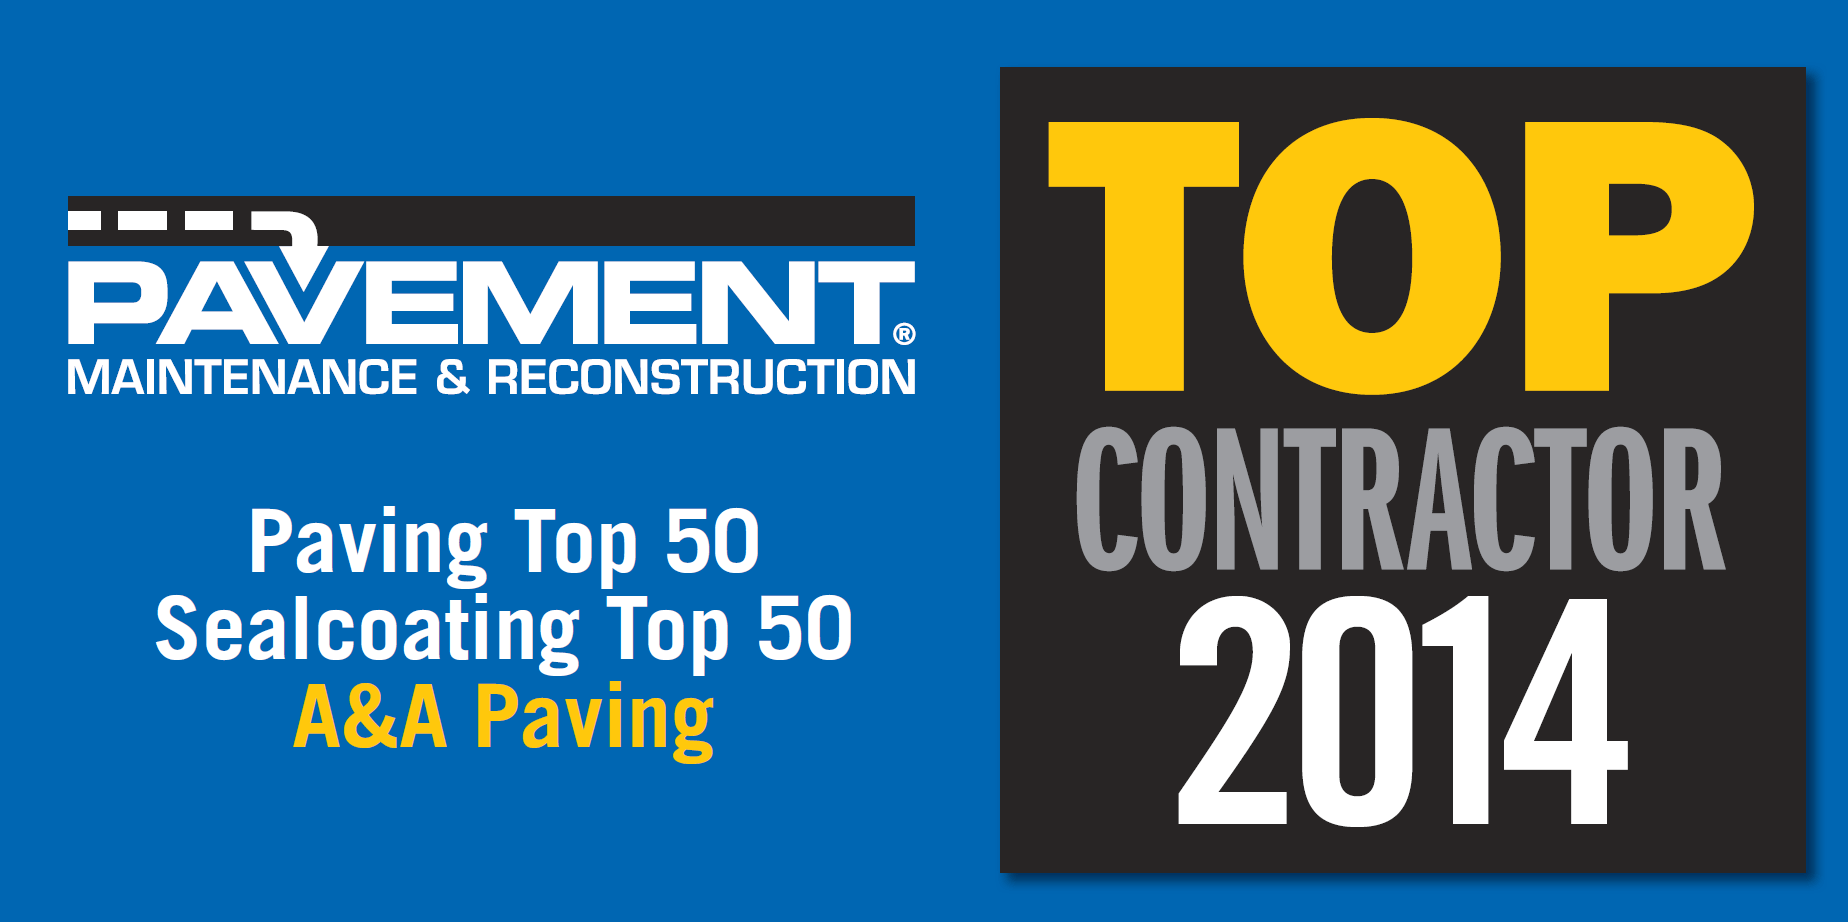 A&A Paving | Top Contractor for 2014